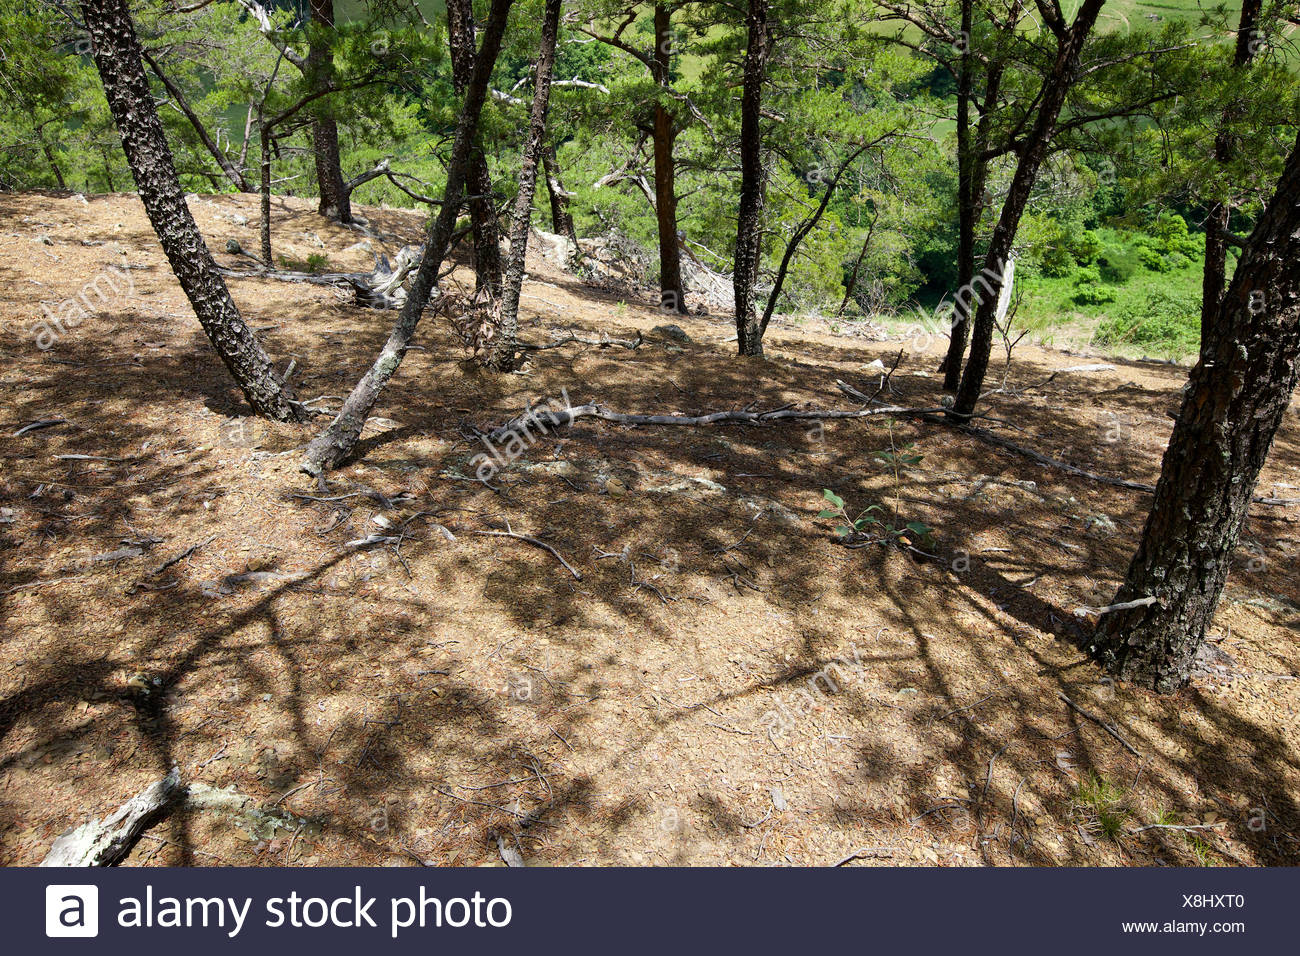 The shale barrens ecosystem, a unique harsh ecosystem with stunted trees, occurring on steep slopes with a southern or western aspect. - Stock Image